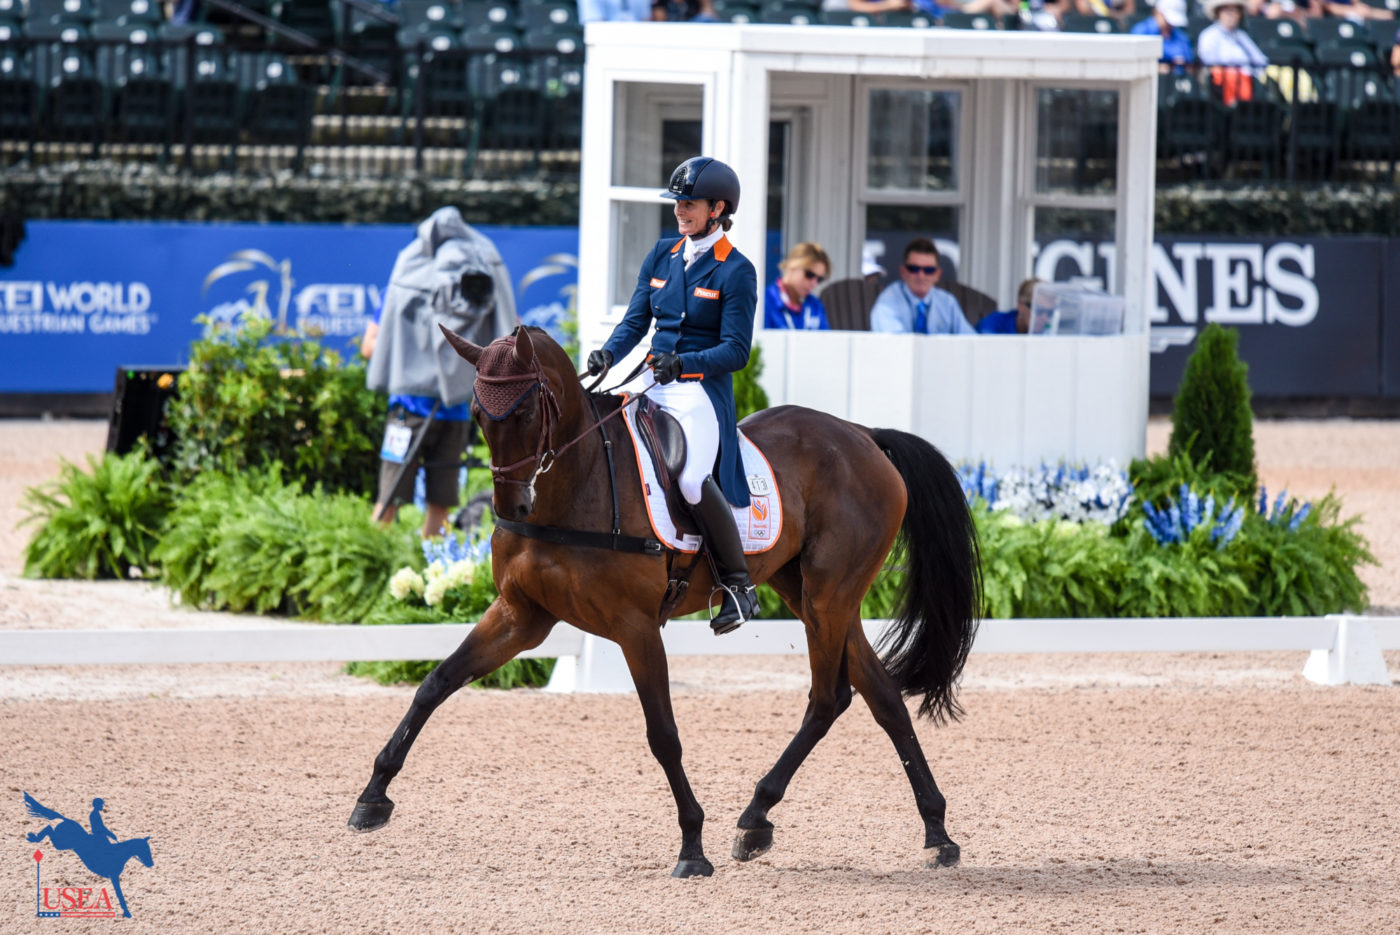 38th - Alice Naber-L'Ozeman and ACSI Harry Belafonte (NED) - 39.9